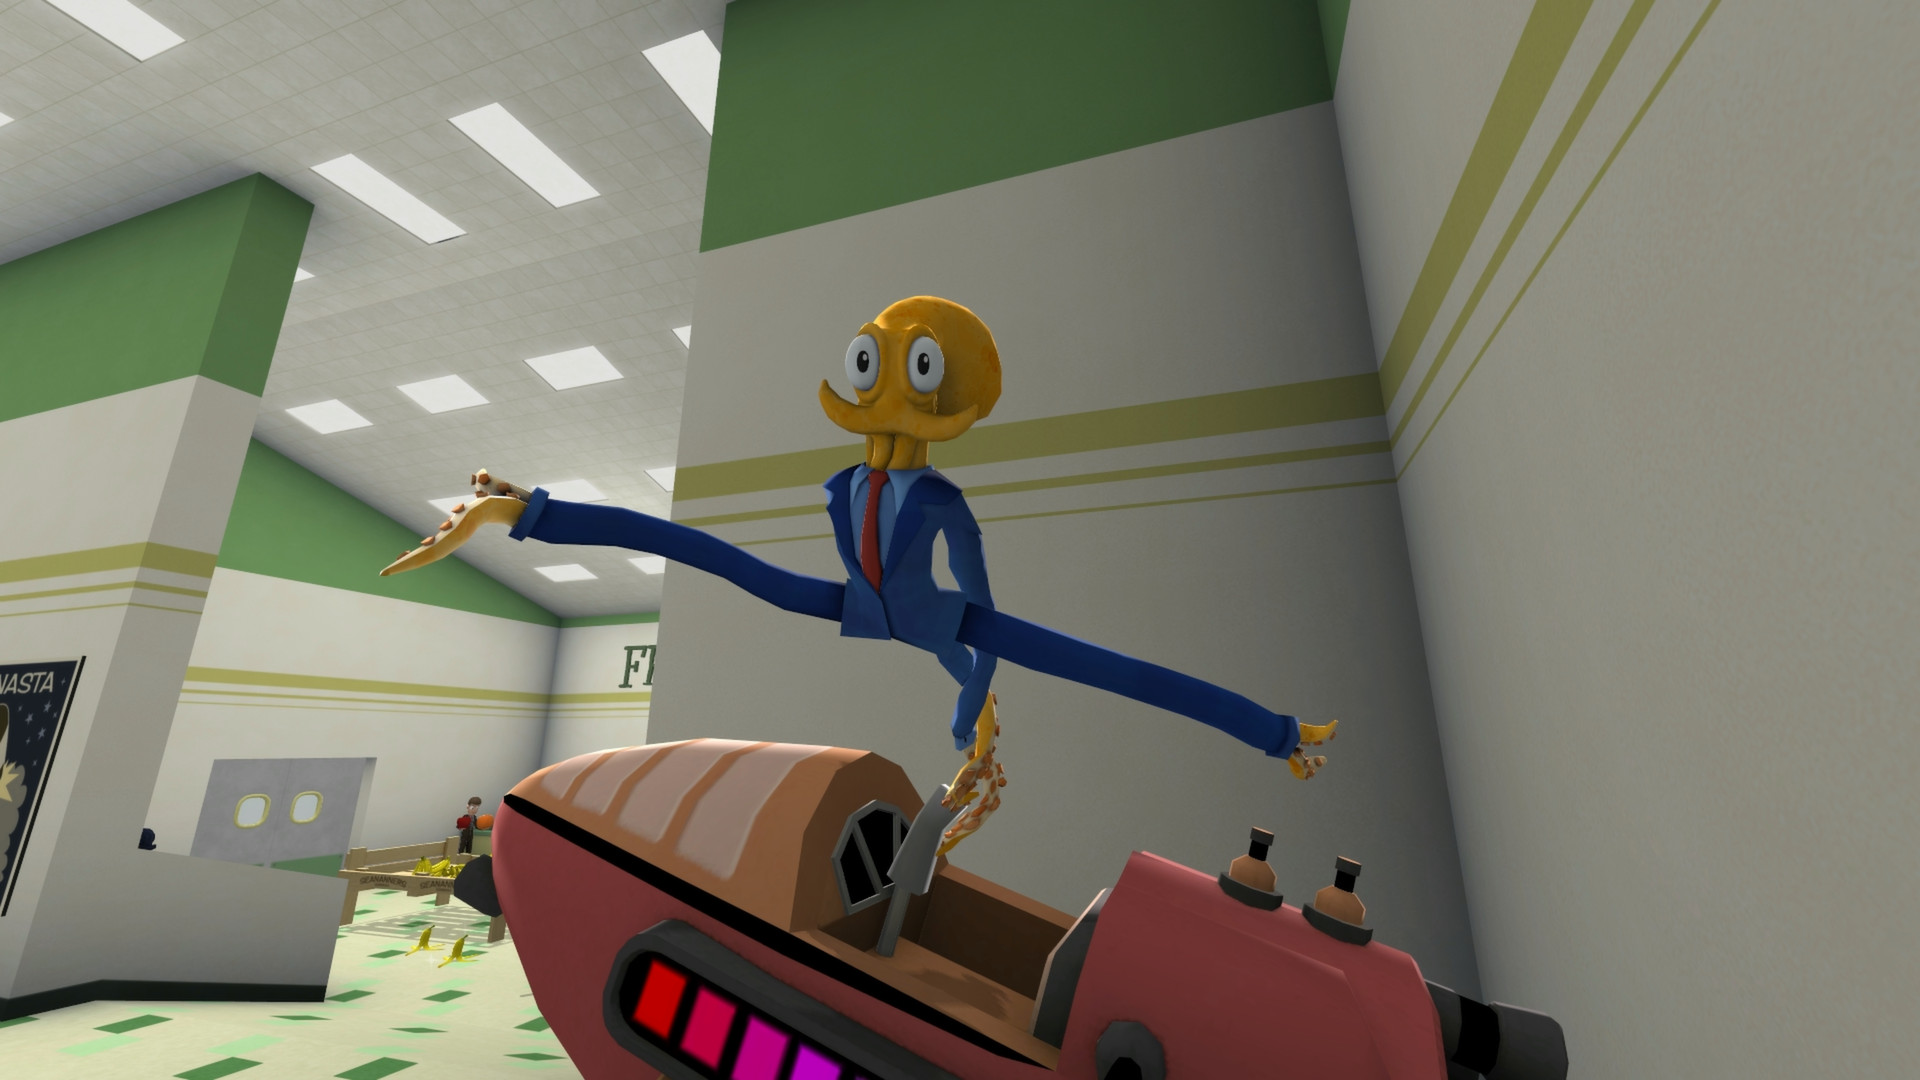 Octodad is a 'dadly' catch at 99 cents on Steam